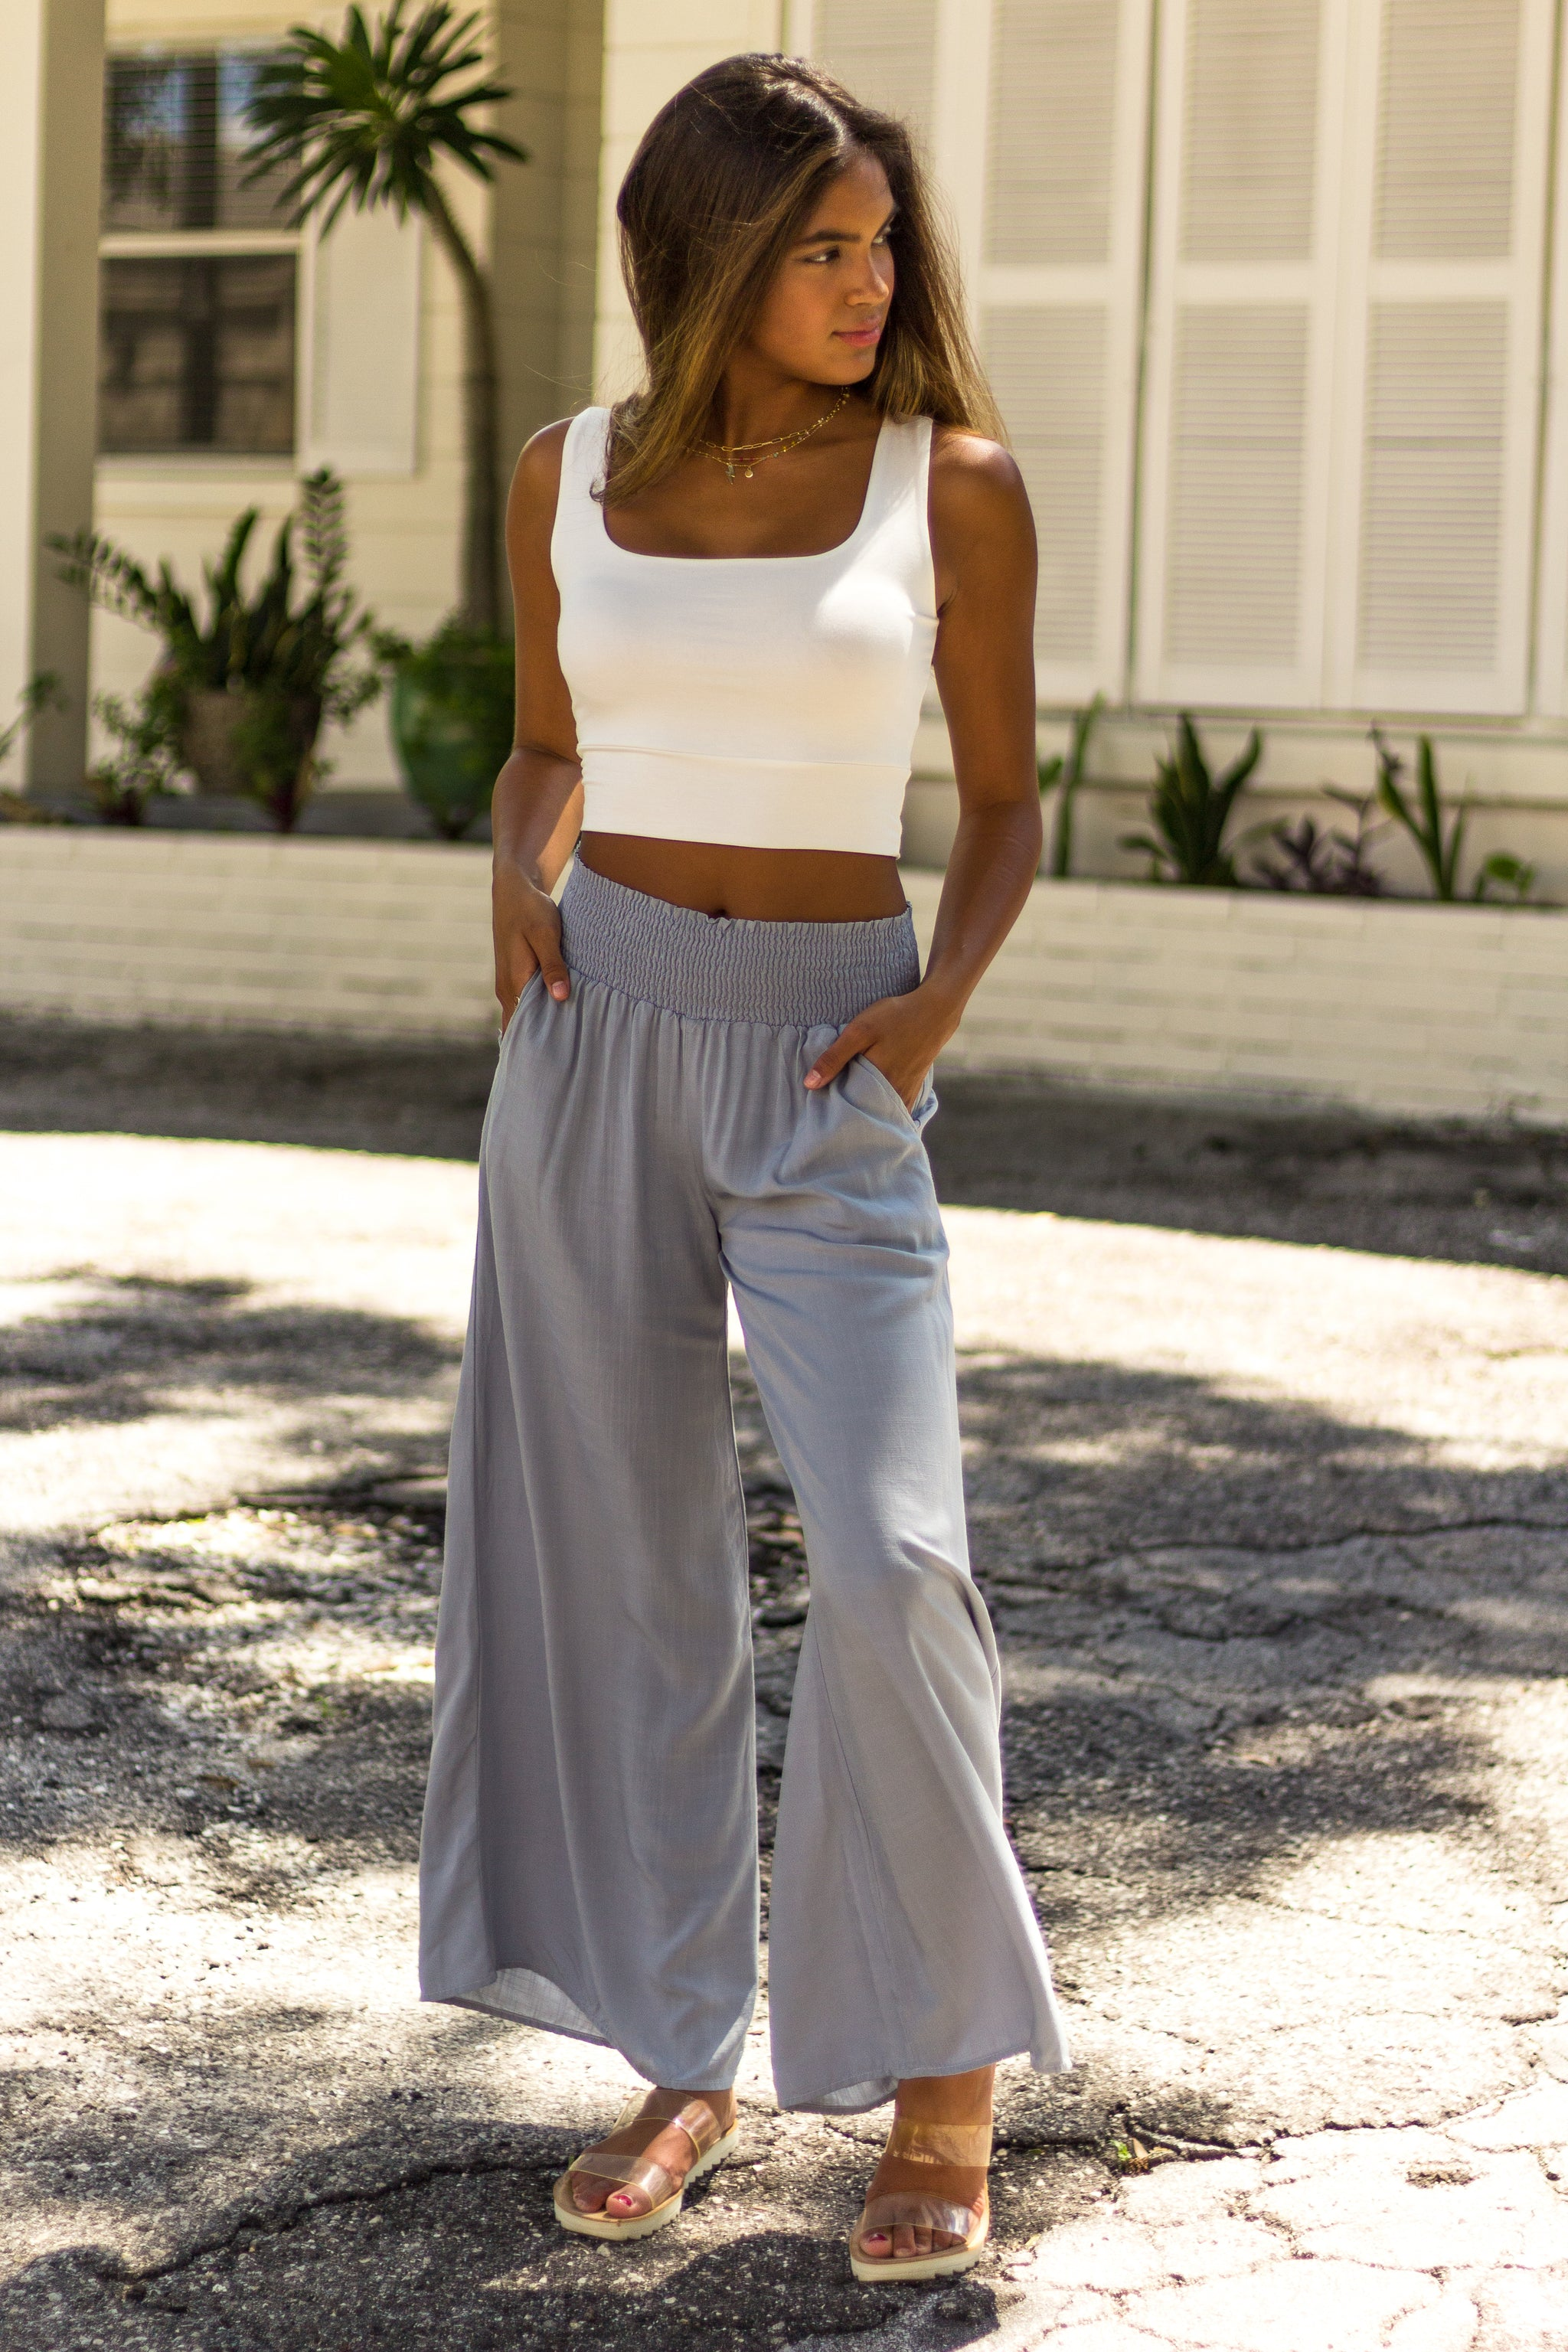 These lightweight pants have a smocked high-rise waistband and lead down to pockets on flowy and oversized pant legs. Style these breezy pants with a crop top.